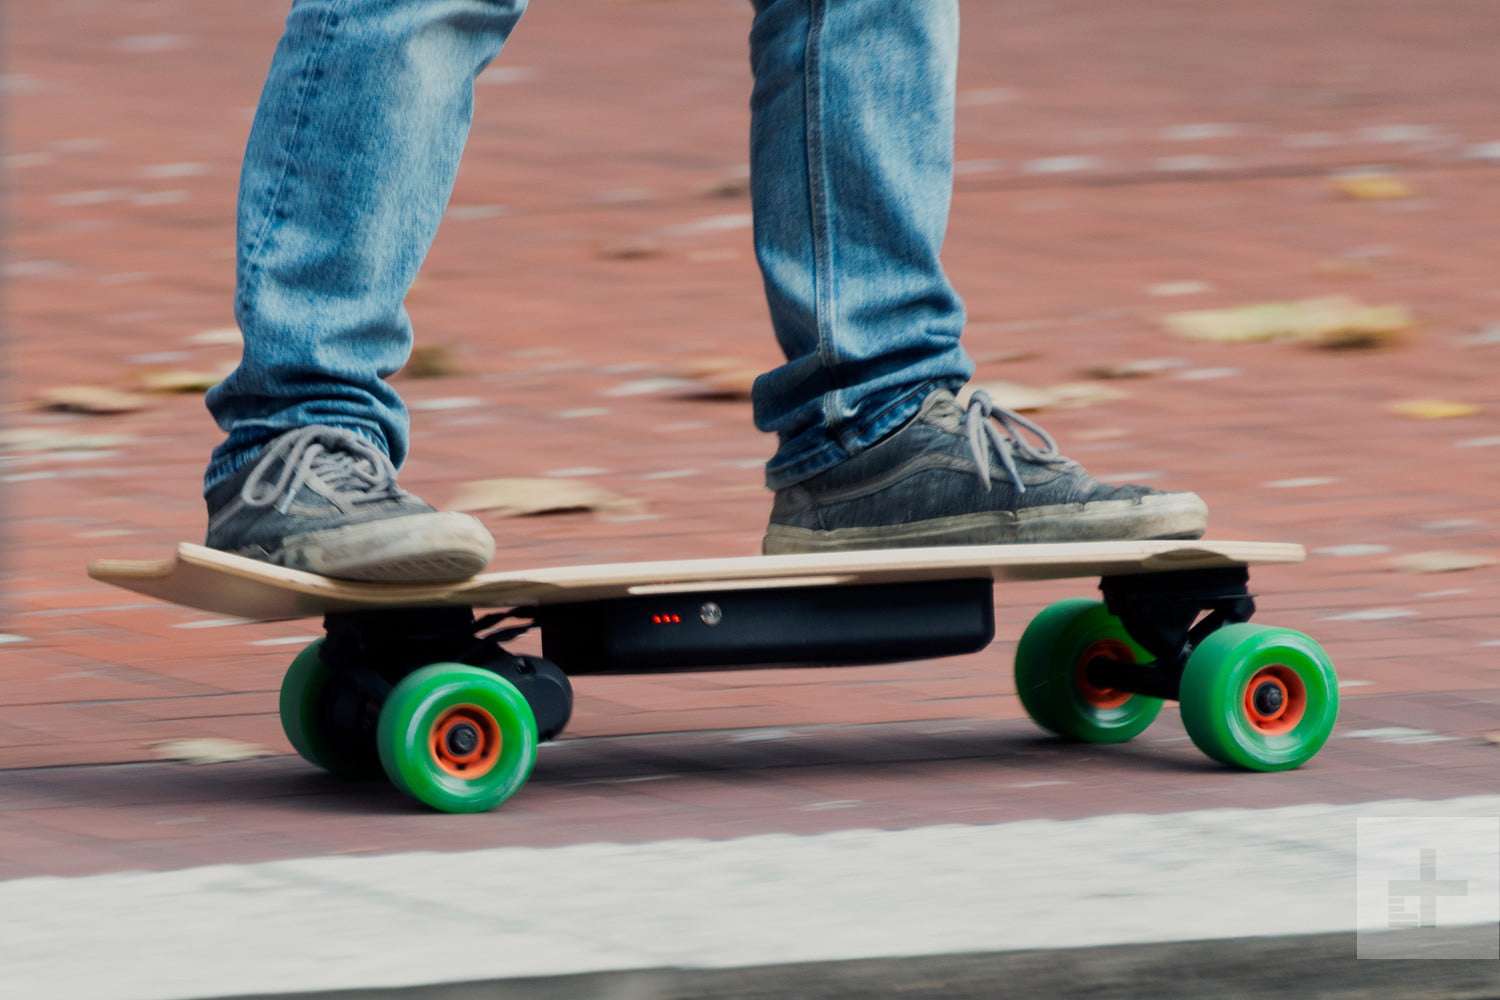 Best Electric Skateboard 2020.The Best Electric Skateboards For 2019 Digital Trends